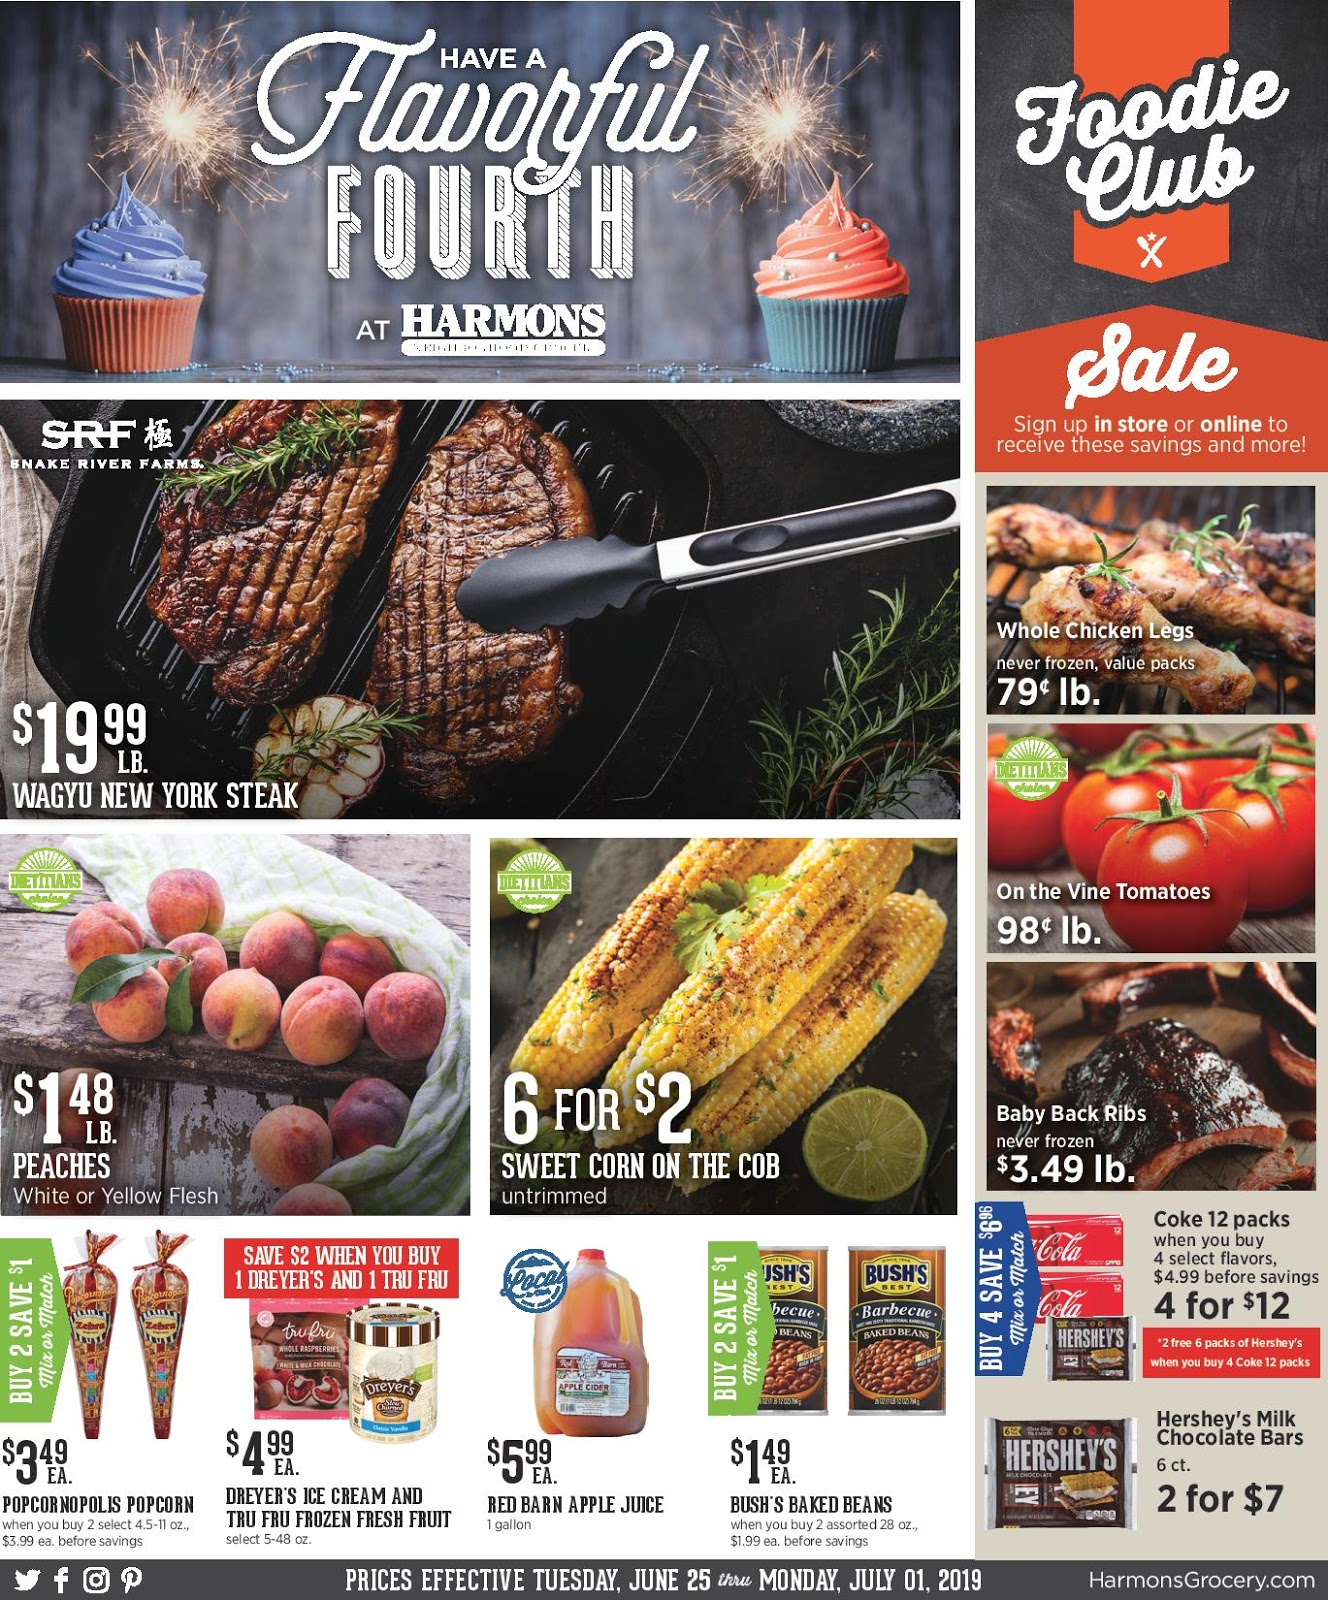 picture about Harmons Printable Coupons known as Harmons Advert Round July 9 - July 15, 2019 or 7/10/19